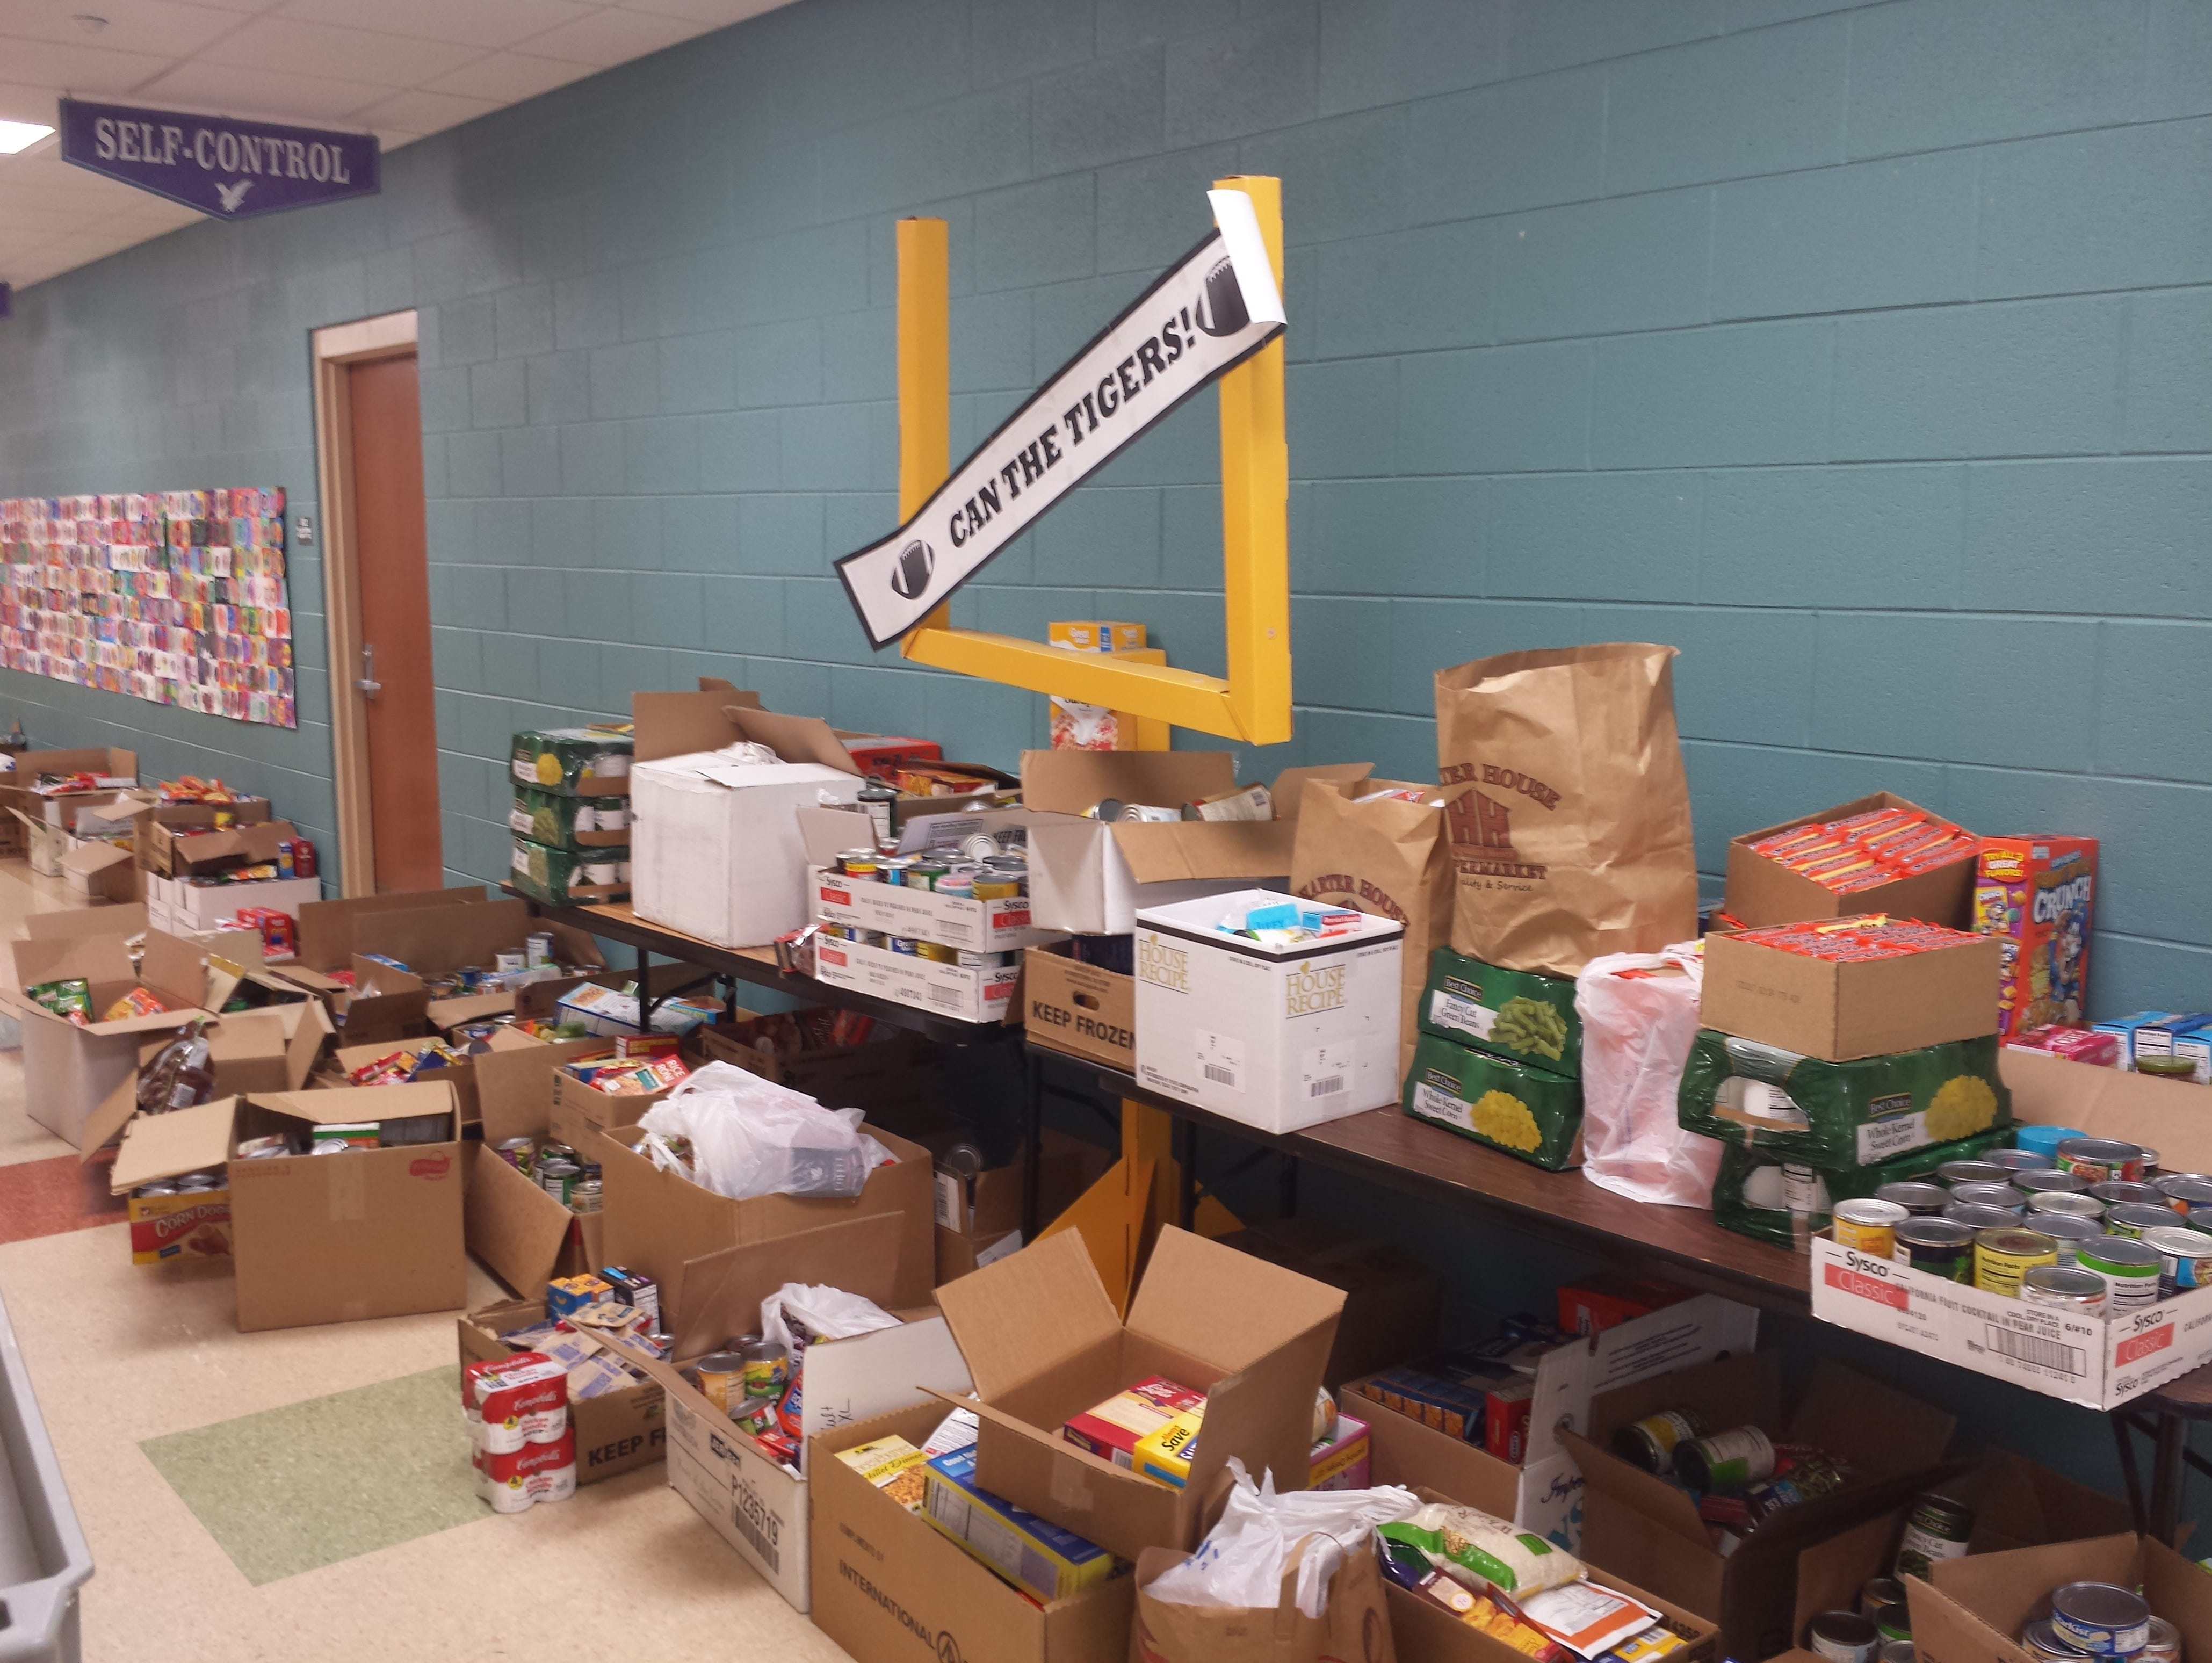 The ninth annual Can the Tigers, Can the Eagles food drive competition generated almost two months of worth of food for Least of These.